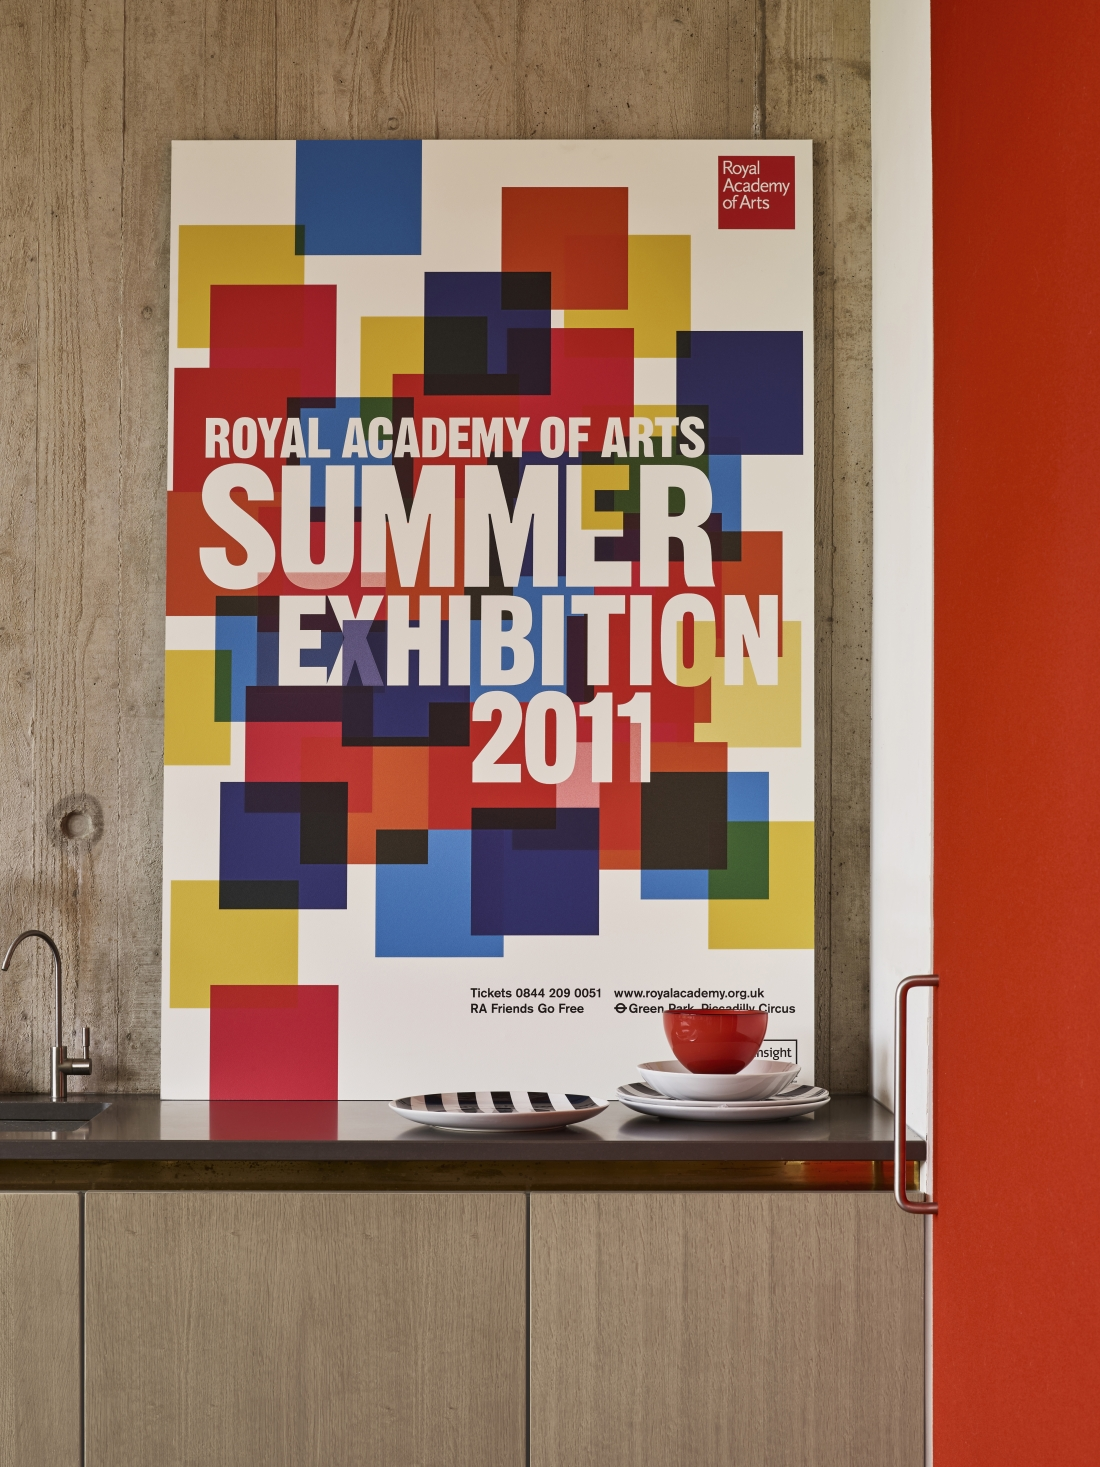 RA Summer Exhibition 2011 Epic Poster ​from the Royal Academy of Arts Collection